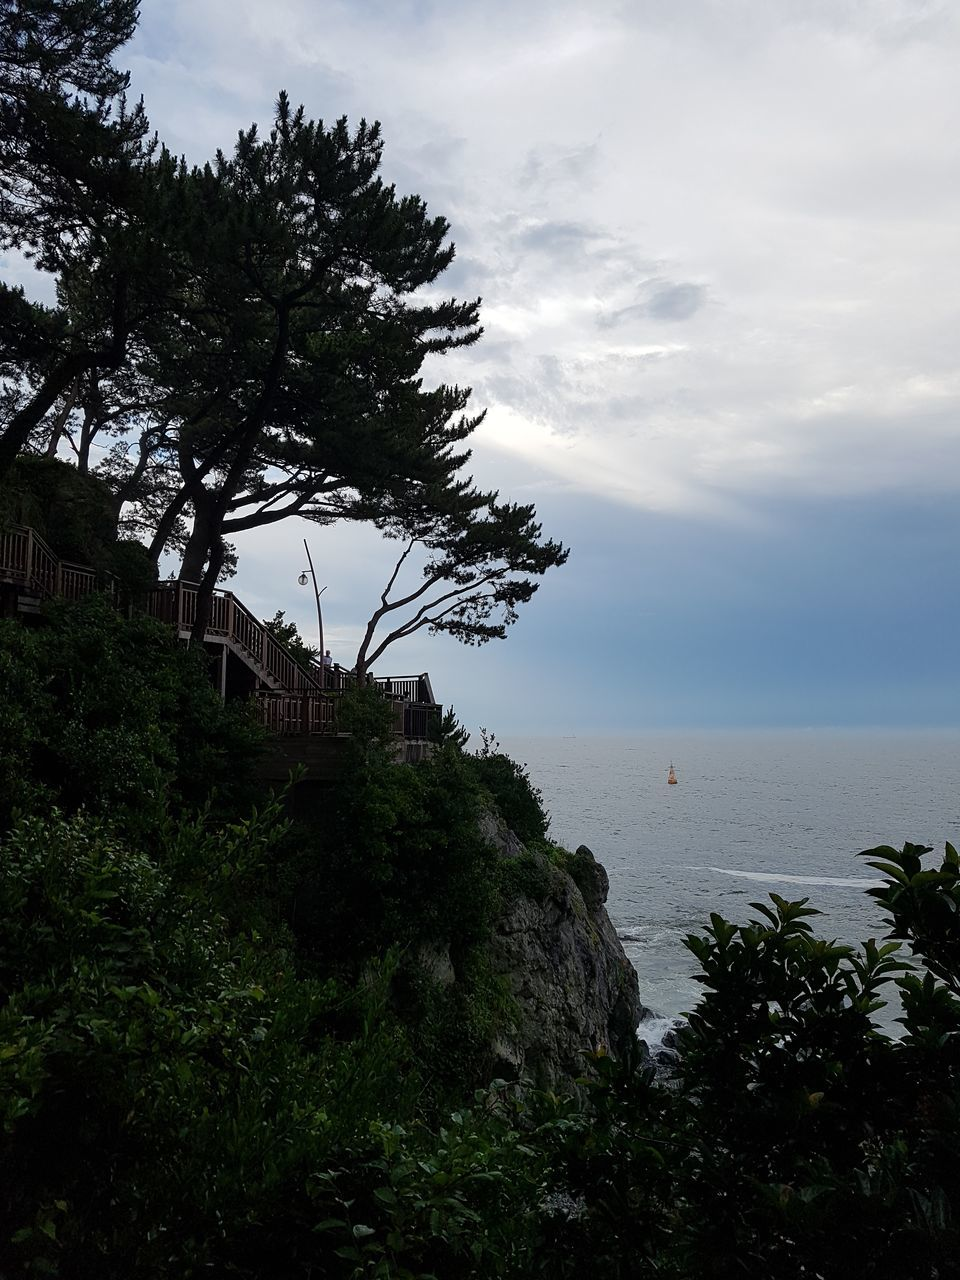 sky, nature, tree, sea, water, cloud - sky, scenics, beauty in nature, no people, tranquility, outdoors, growth, scenery, day